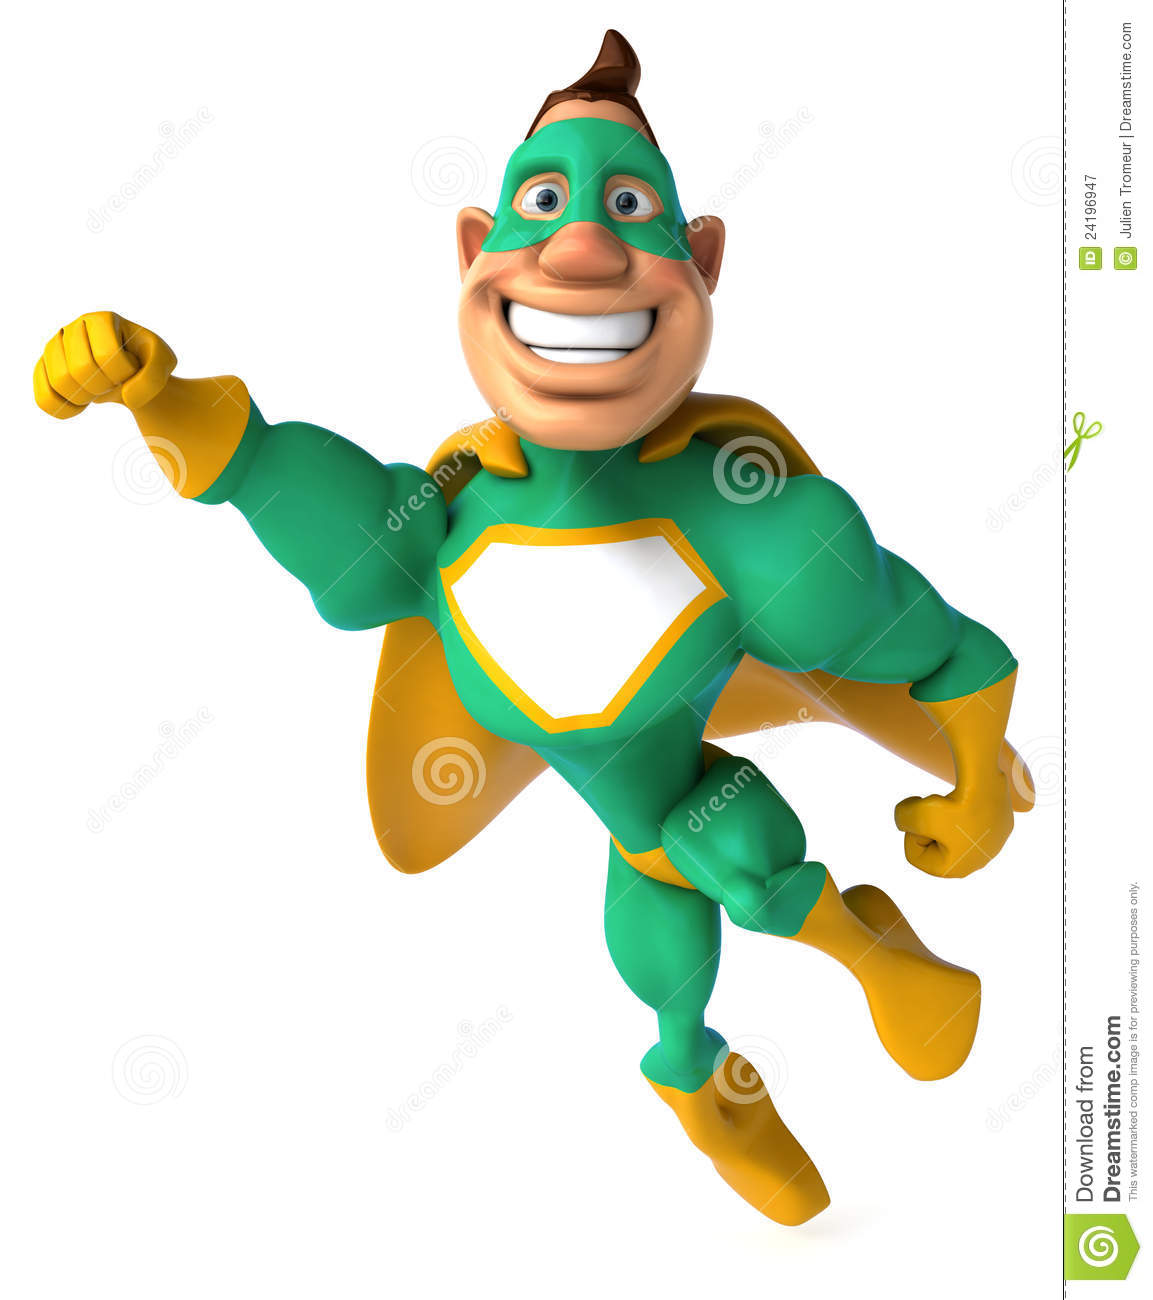 Green Superhero Royalty Free Stock Photography - Image: 24196947